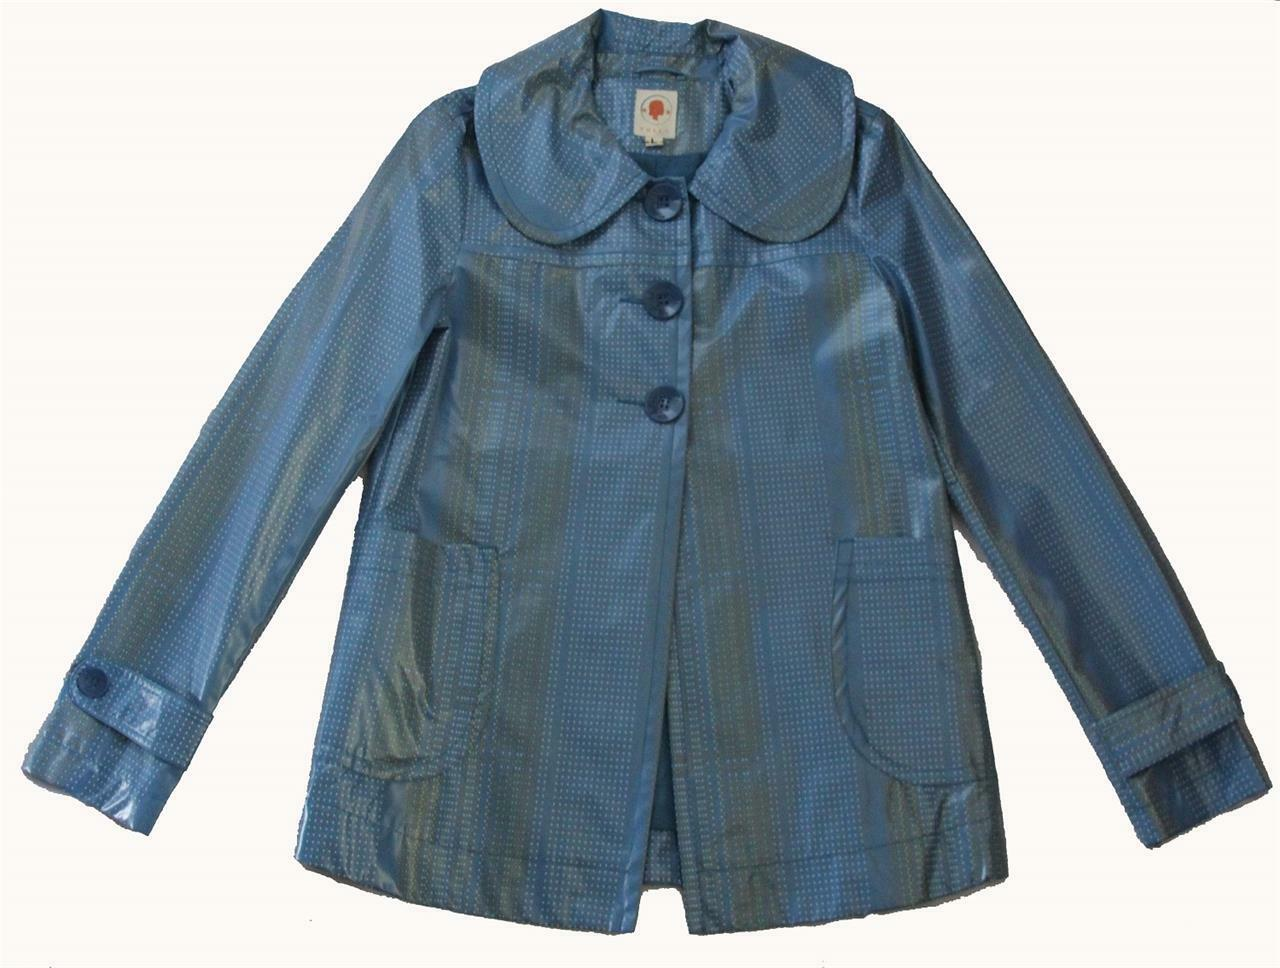 TULLE Anthropologie bluee Lined Polka Dots Swing Nylon PU Raincoat NEW Wms L